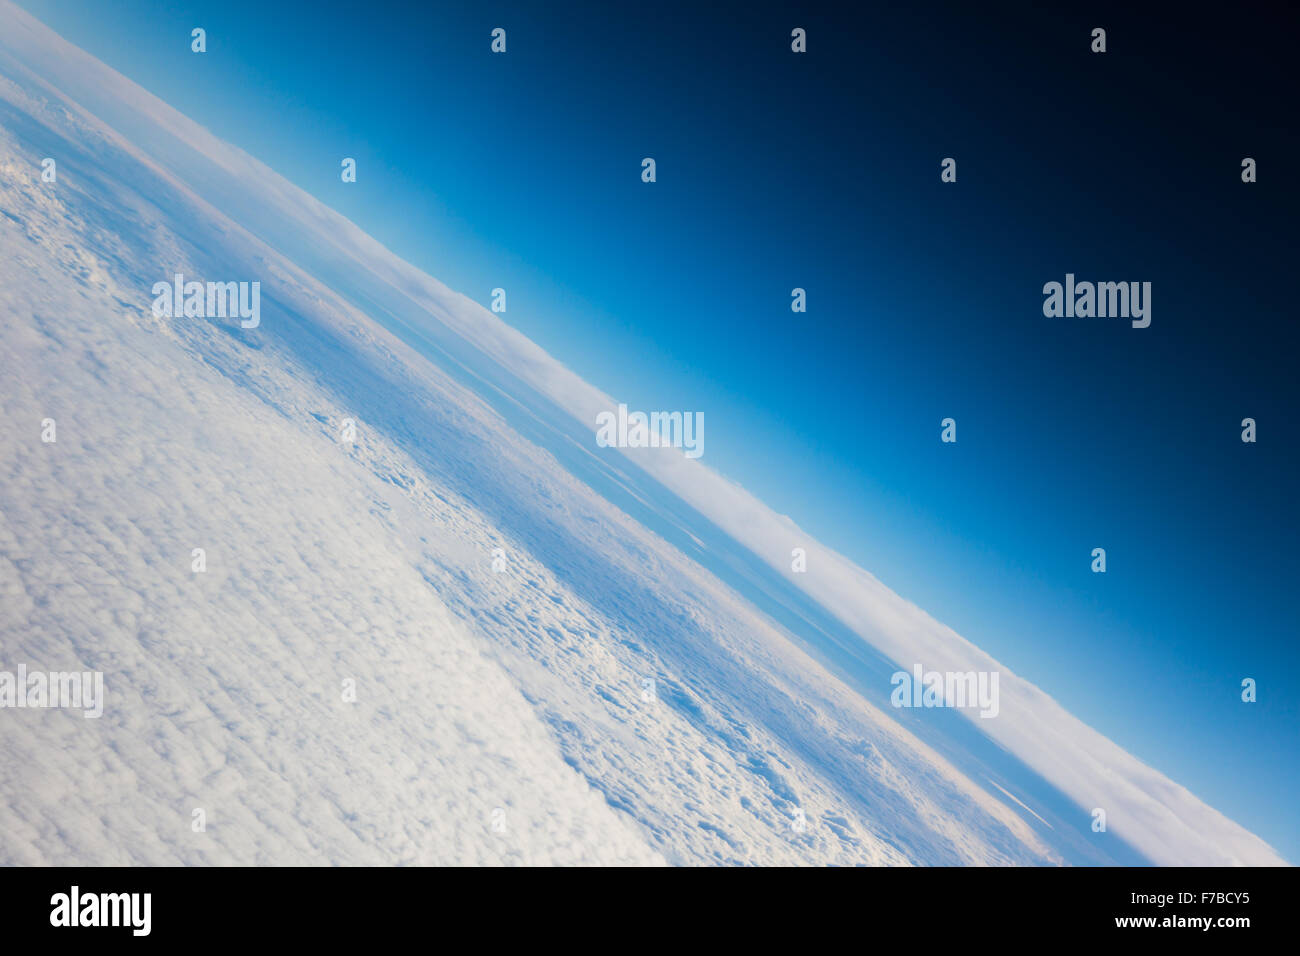 Planet earth the blue planet close up view from the space - Stock Image